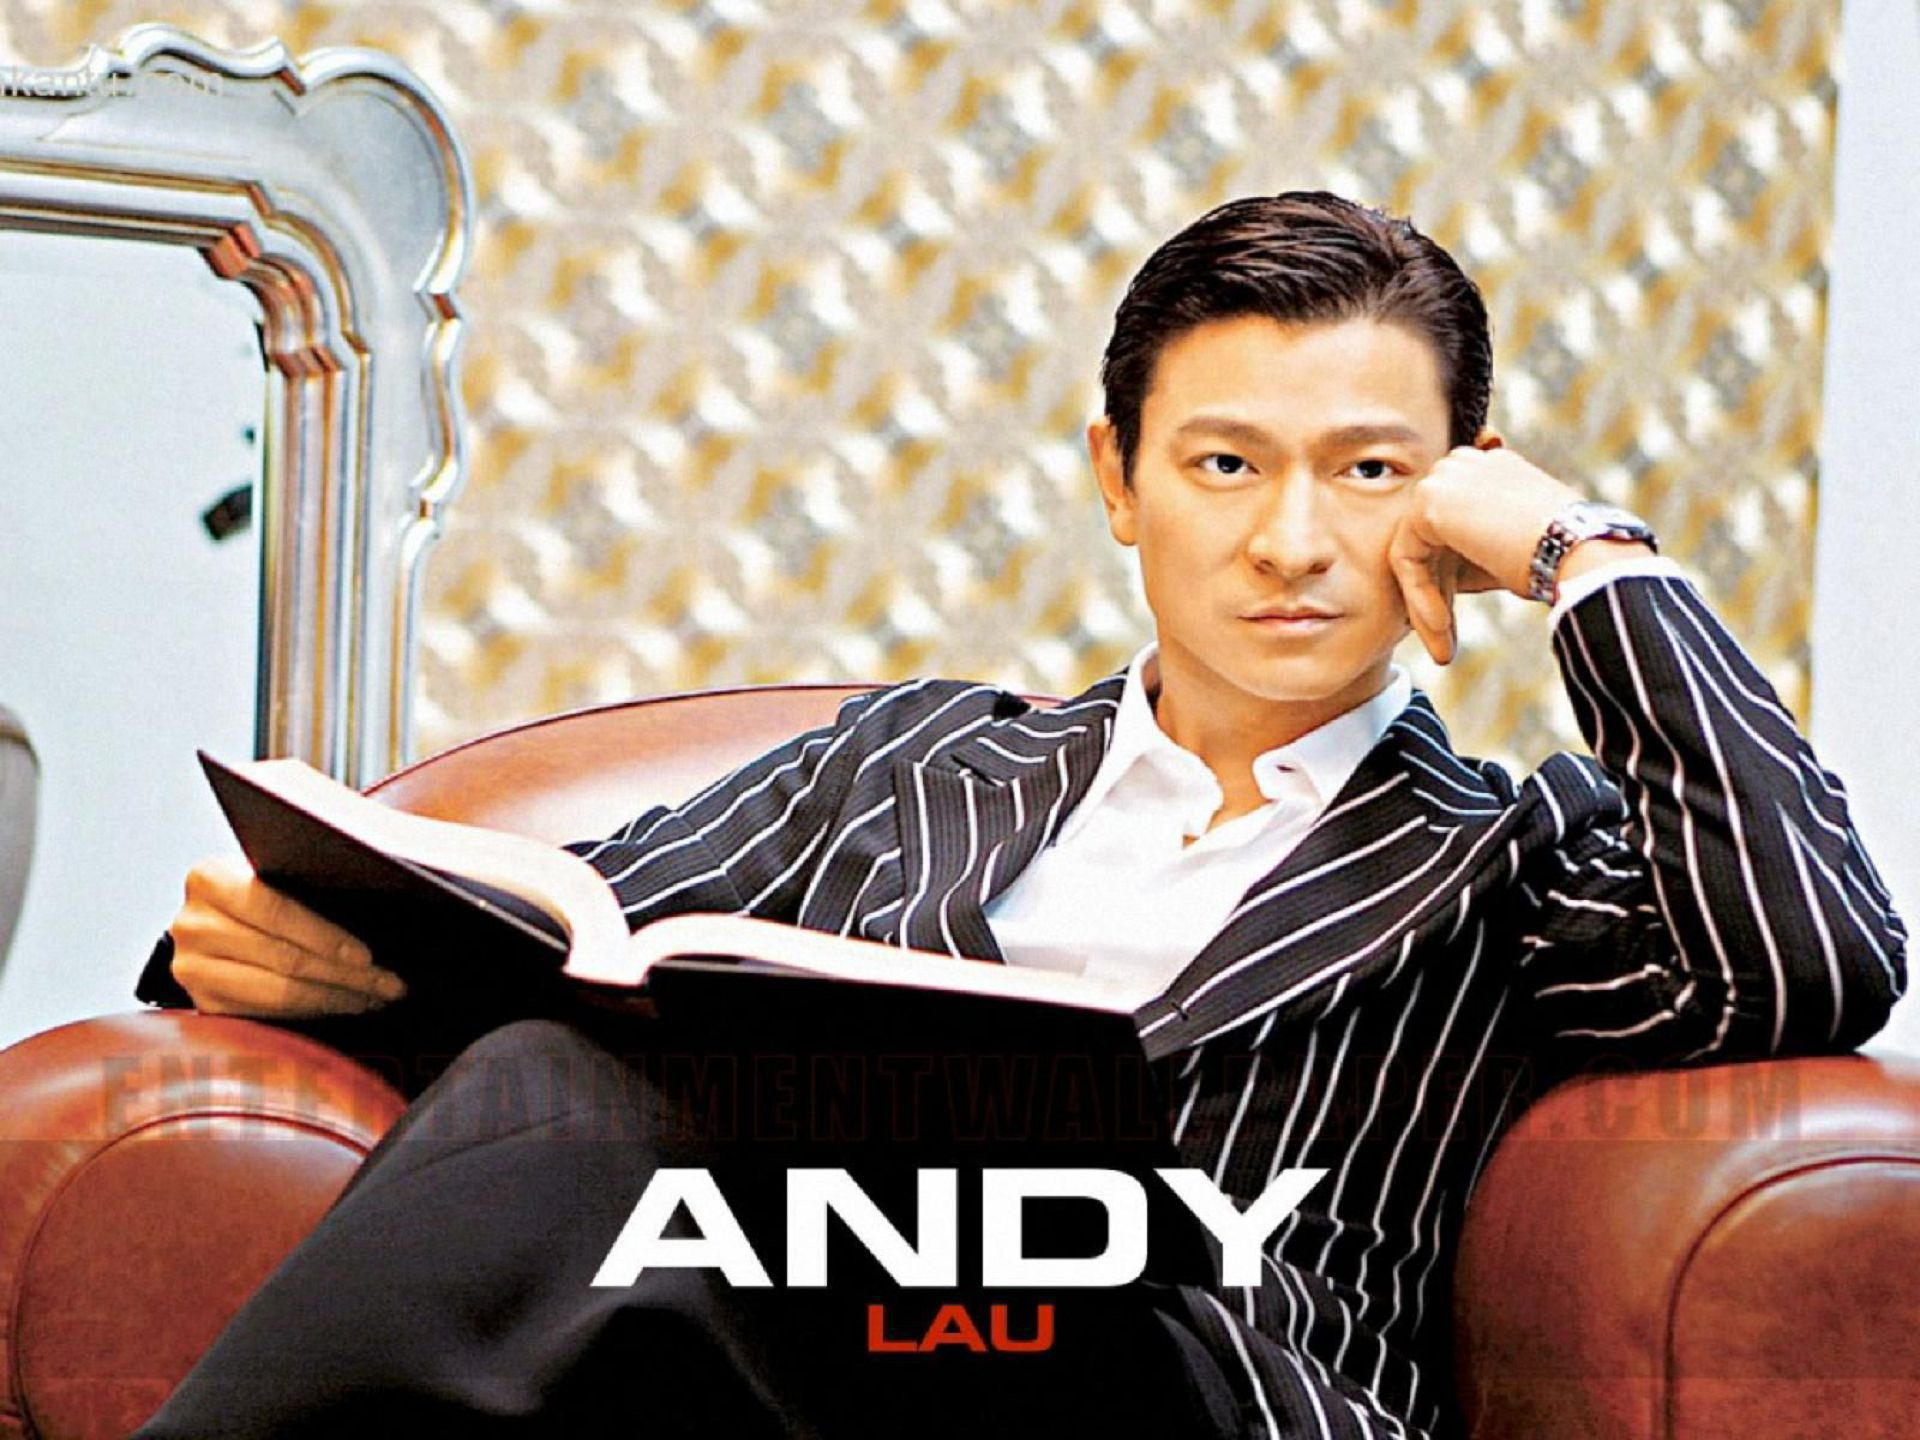 Andy Lau Wallpapers Backgrounds 1920x1440